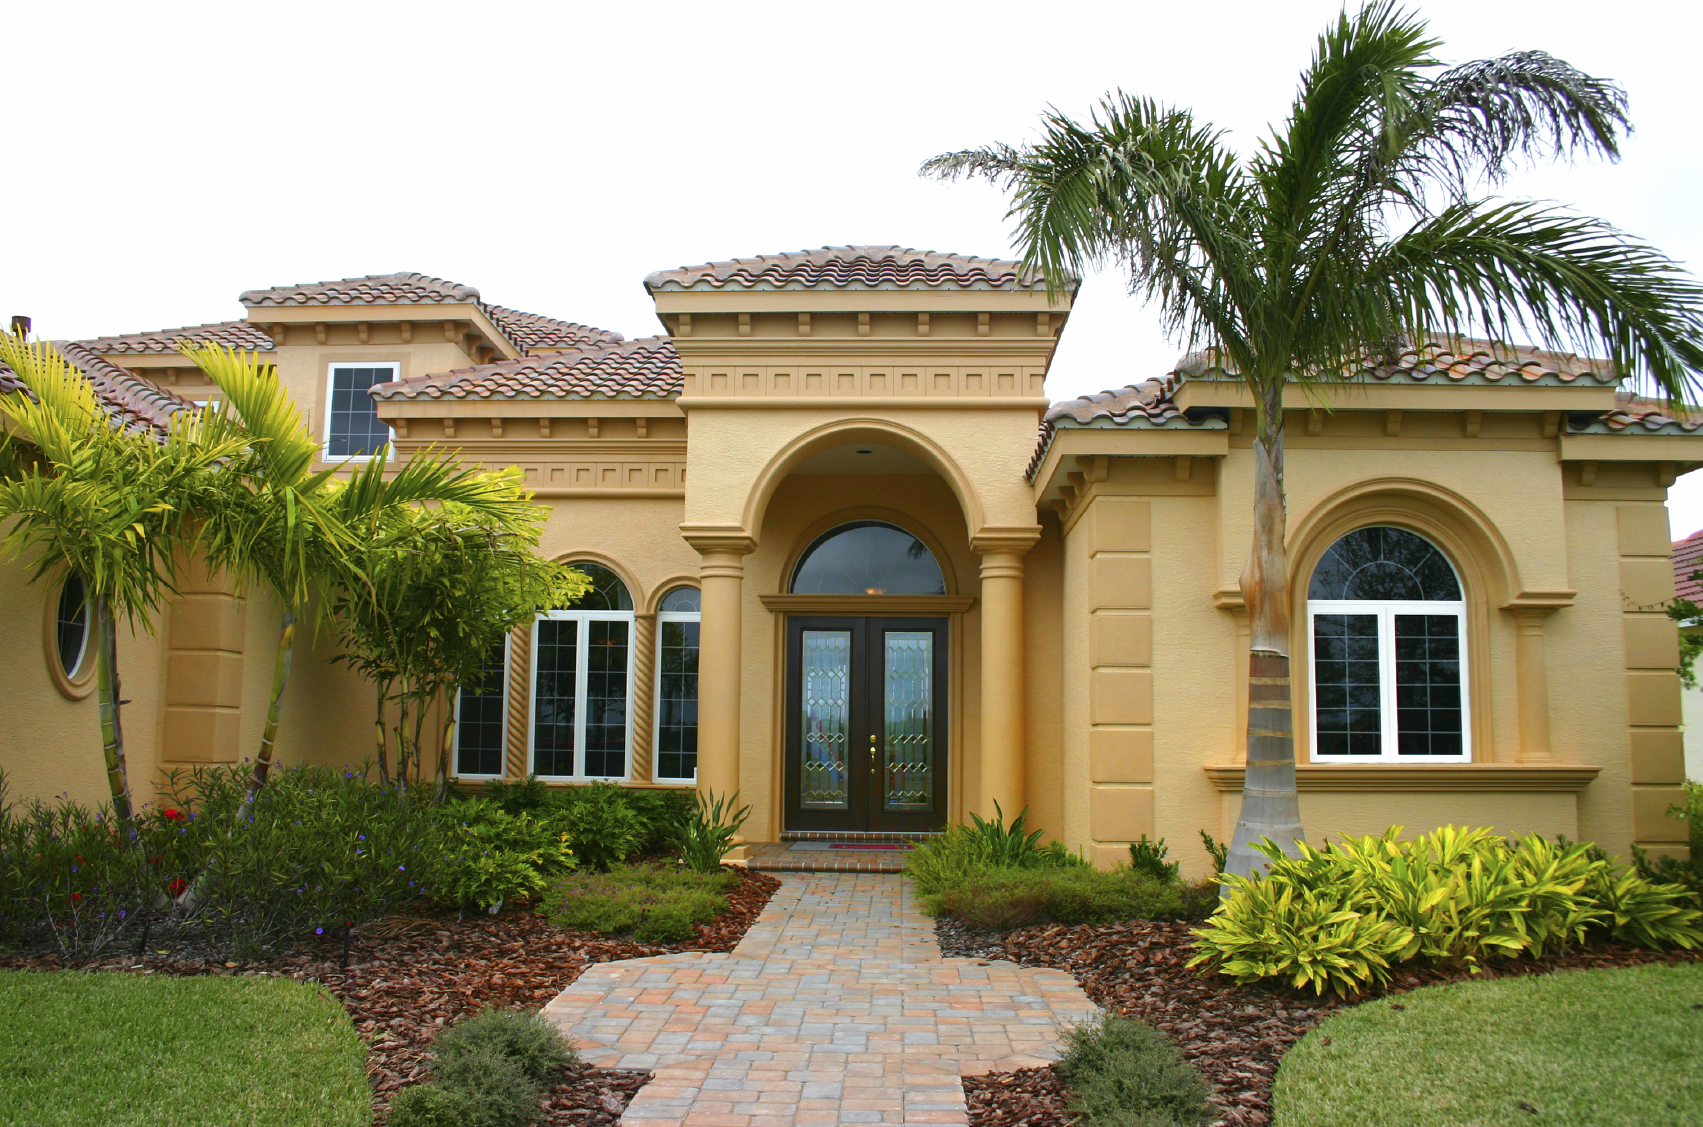 tampa real estate tampa homes for sale tampa florida html